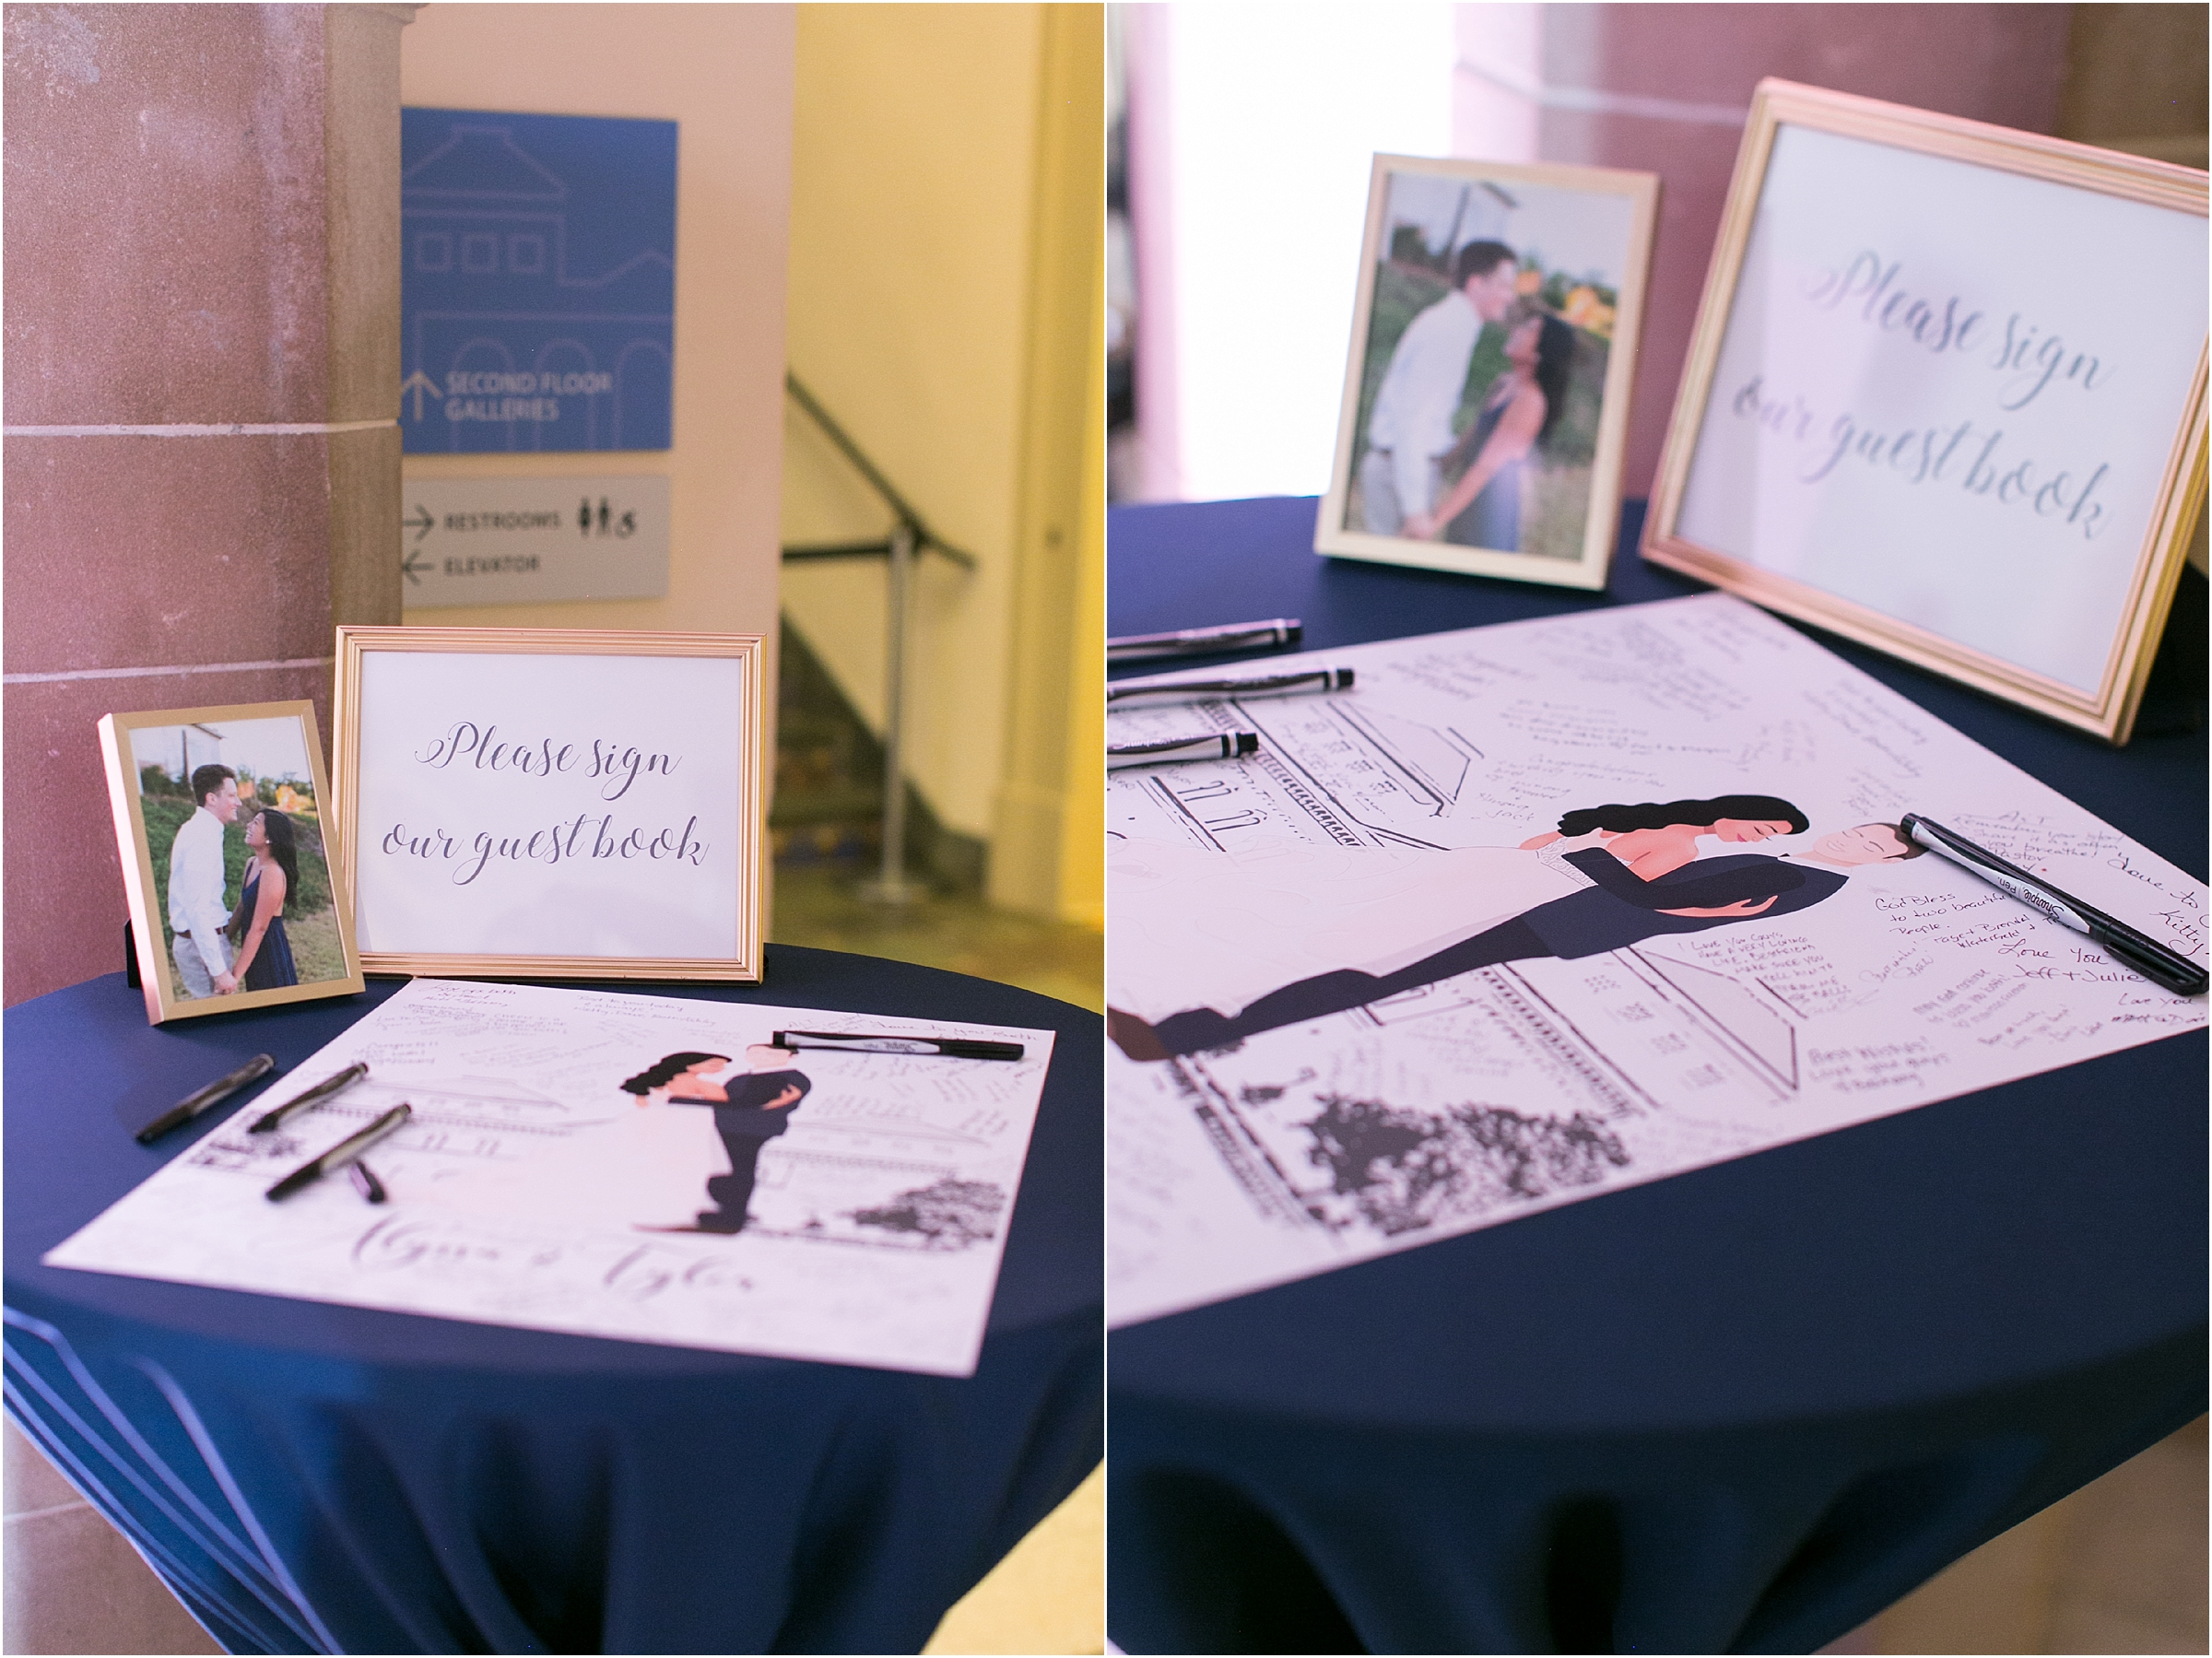 Chrysler Museum of Art elegant wedding reception jessica ryan photography paperdolls design